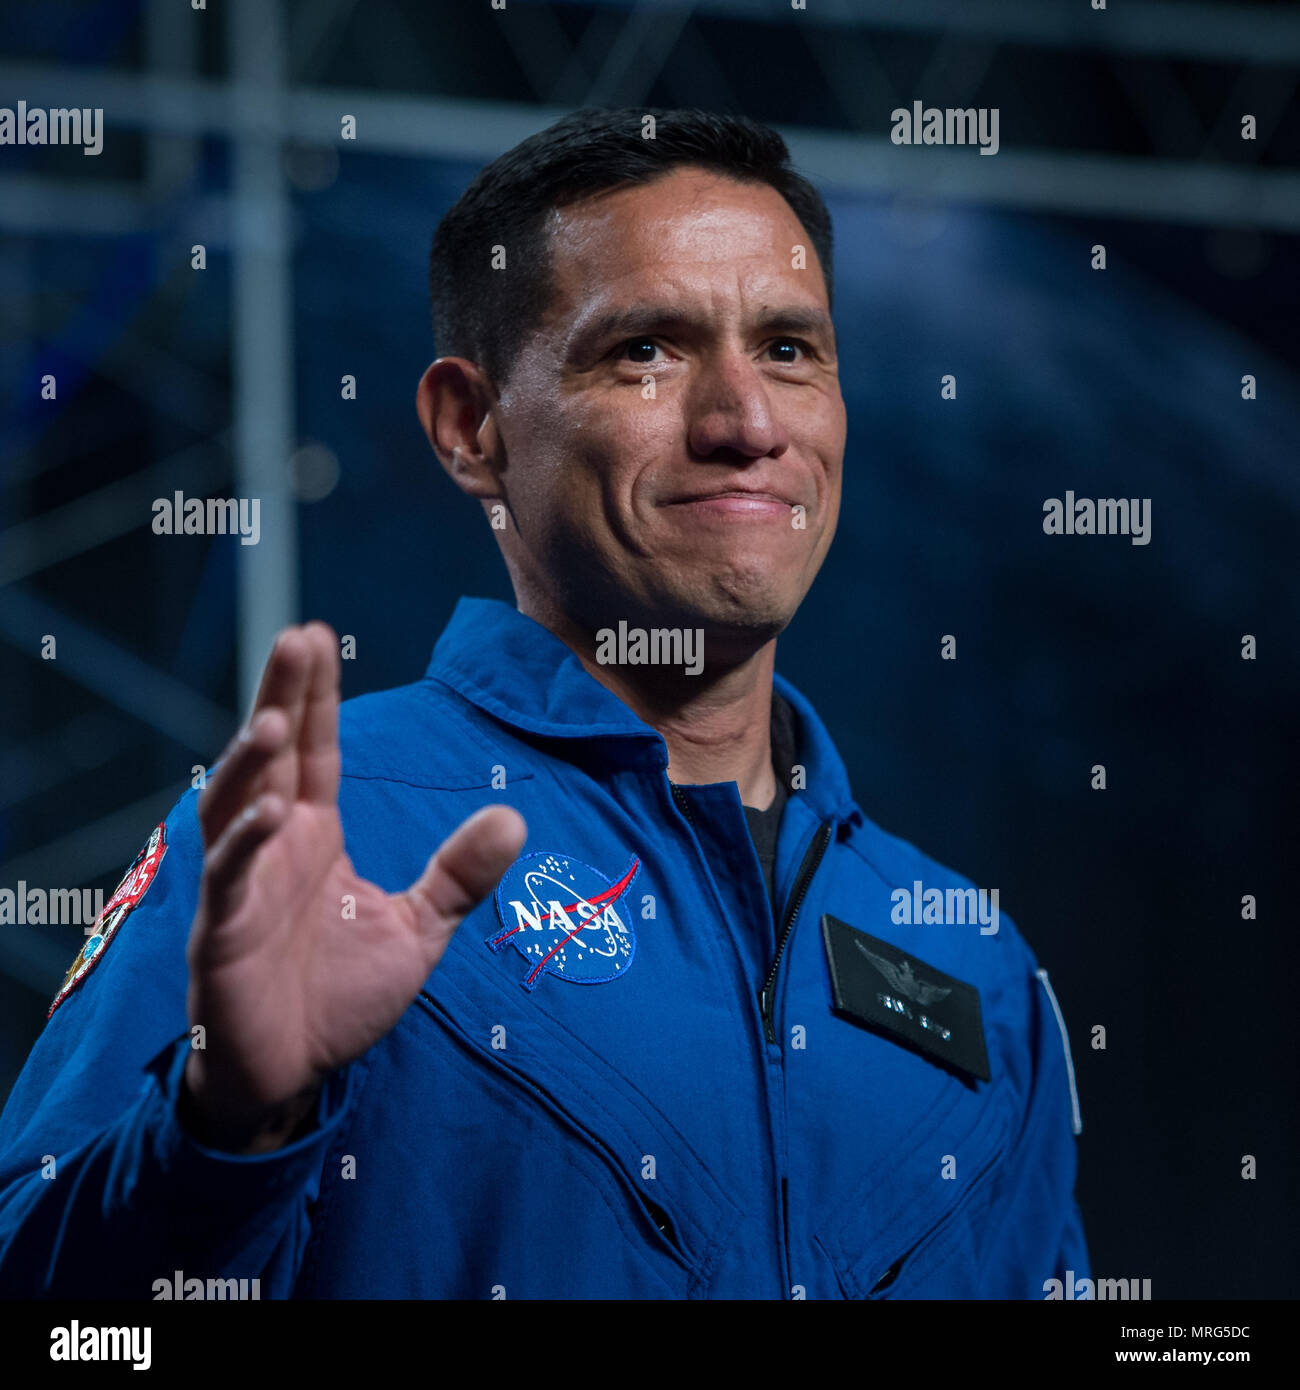 41-year-old NASA astronaut candidate Francisco Rubio waves as he is introduced as one of 12 new candidates, Wednesday, June 7, 2017 during an event at NASA's Johnson Space Center in Houston, Texas. After completing two years of training, the new astronaut candidates could be assigned to missions performing research on the International Space Station, launching from American soil on spacecraft built by commercial companies, and launching on deep space missions on NASA's new Orion spacecraft and Space Launch System rocket. Photo Credit: (NASA/Bill Ingalls) - Stock Image